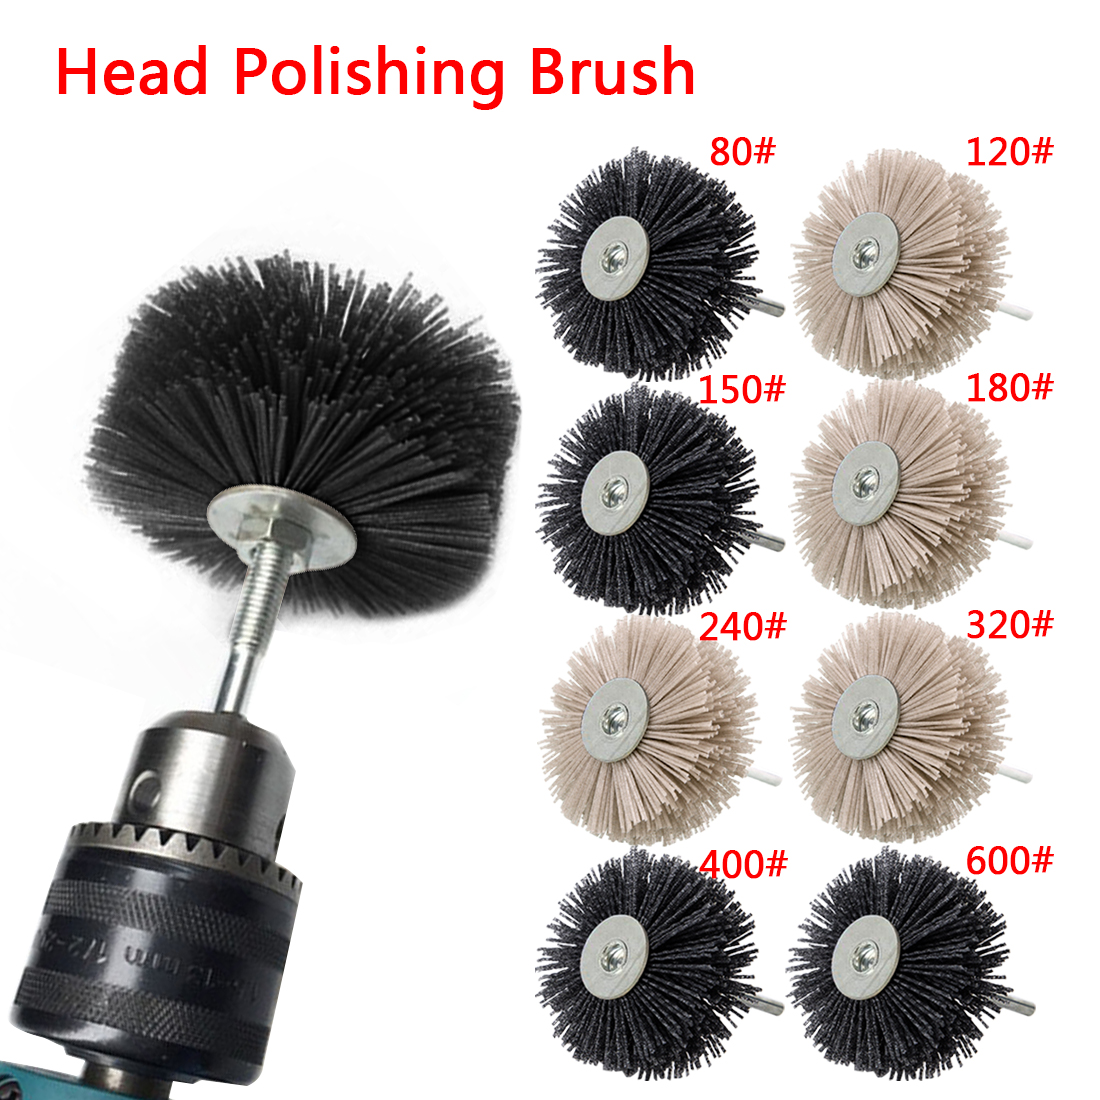 Nylon Wheel Brush 1pc Abrasive Wire Grinding Flower Head Abrasive   Woodwork Polishing Brush Bench Grinder For Wood Furniture